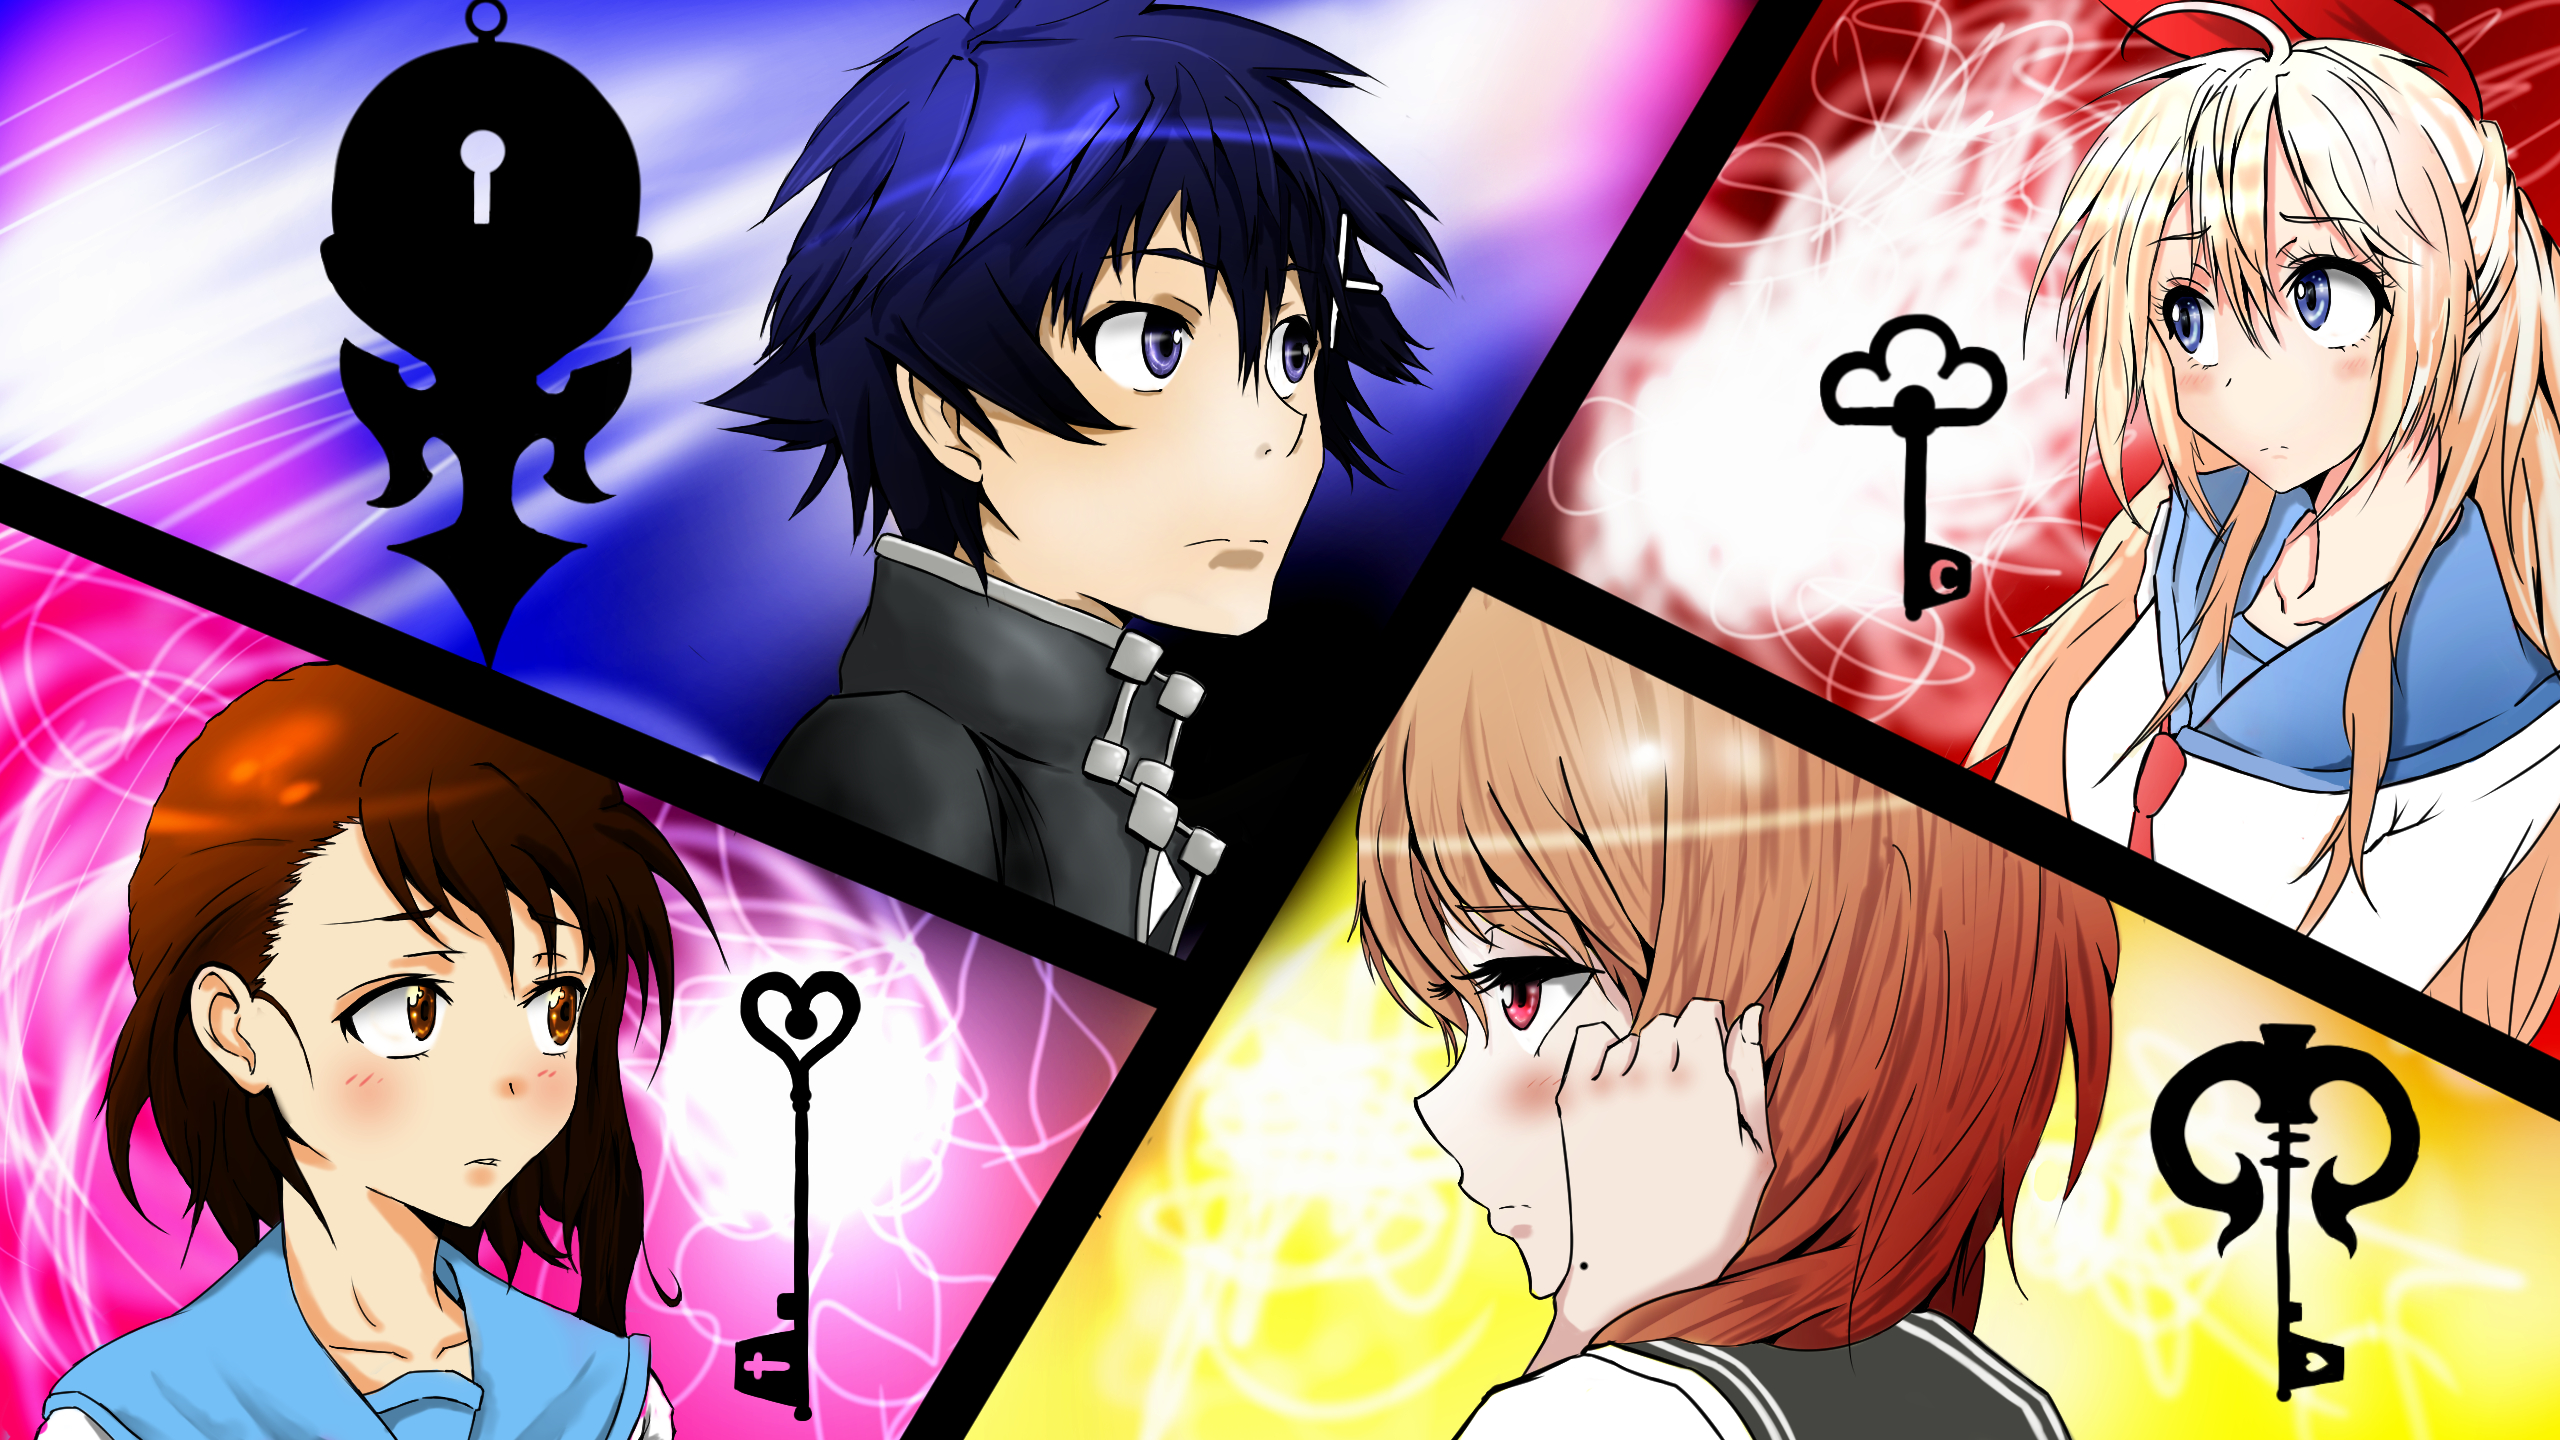 Nisekoi Images HD Wallpaper And Background Photos